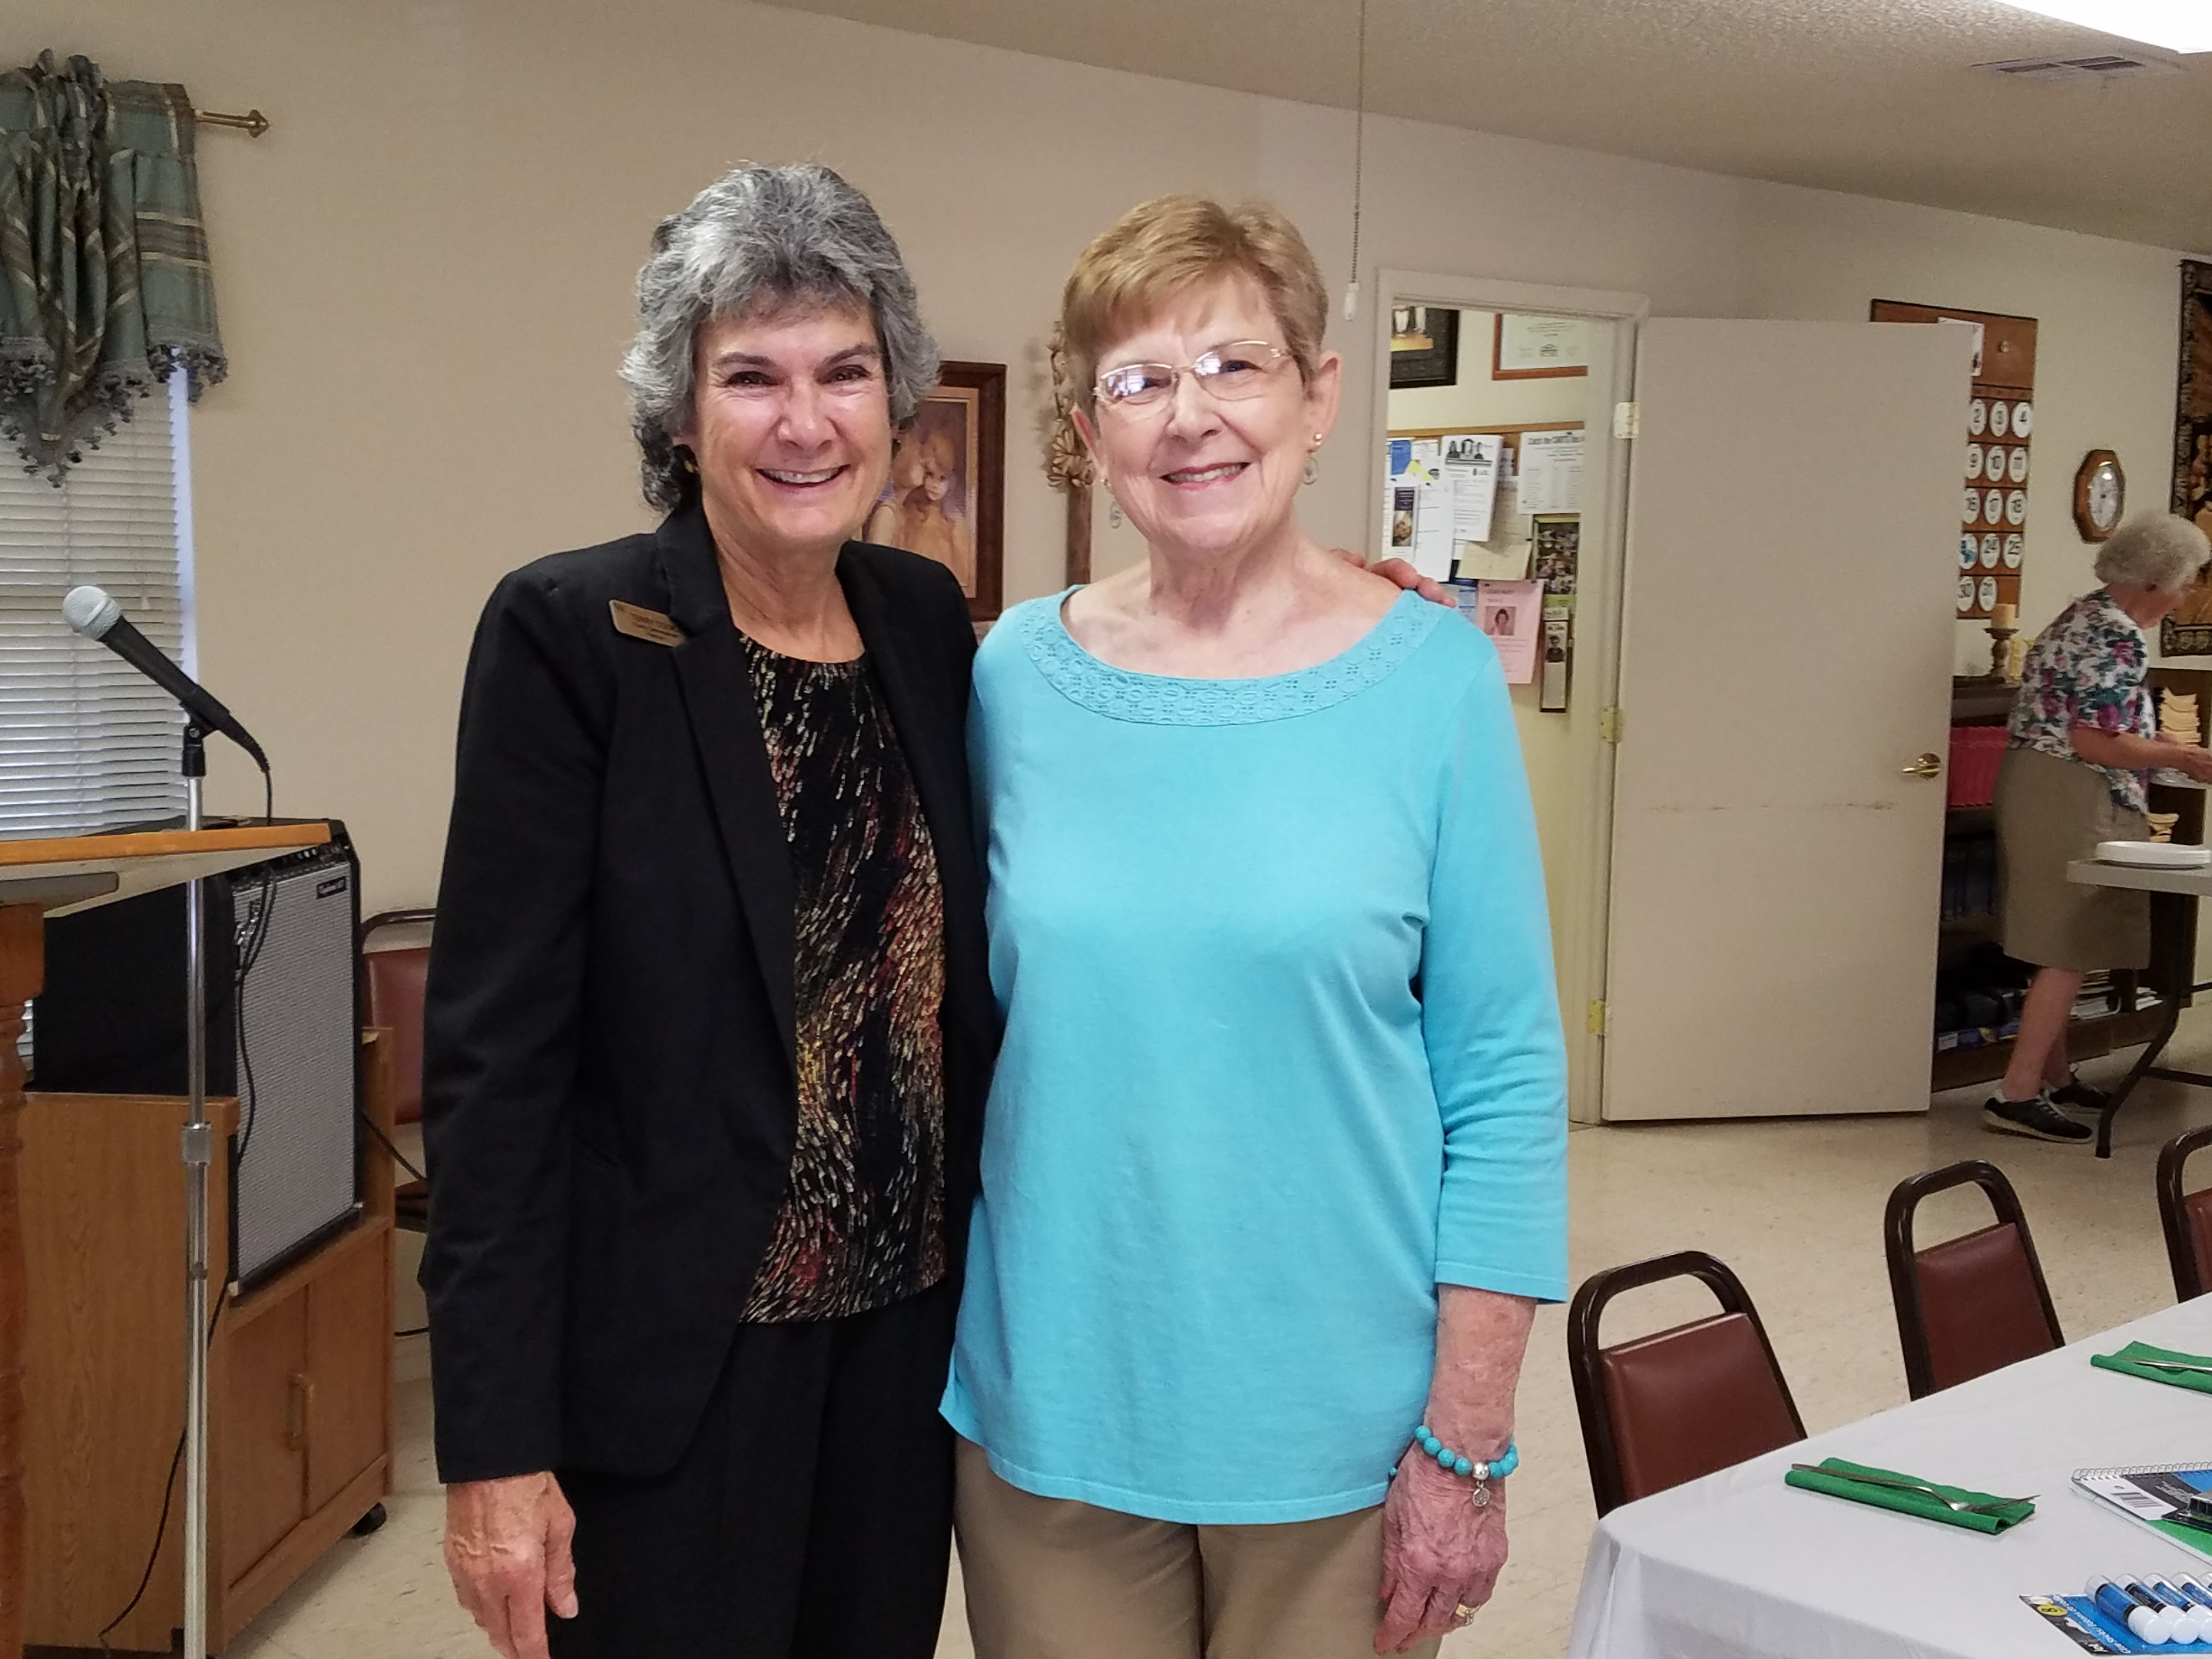 Commissioner Cook and Susan Komandasky, Coordinator of the August luncheon.